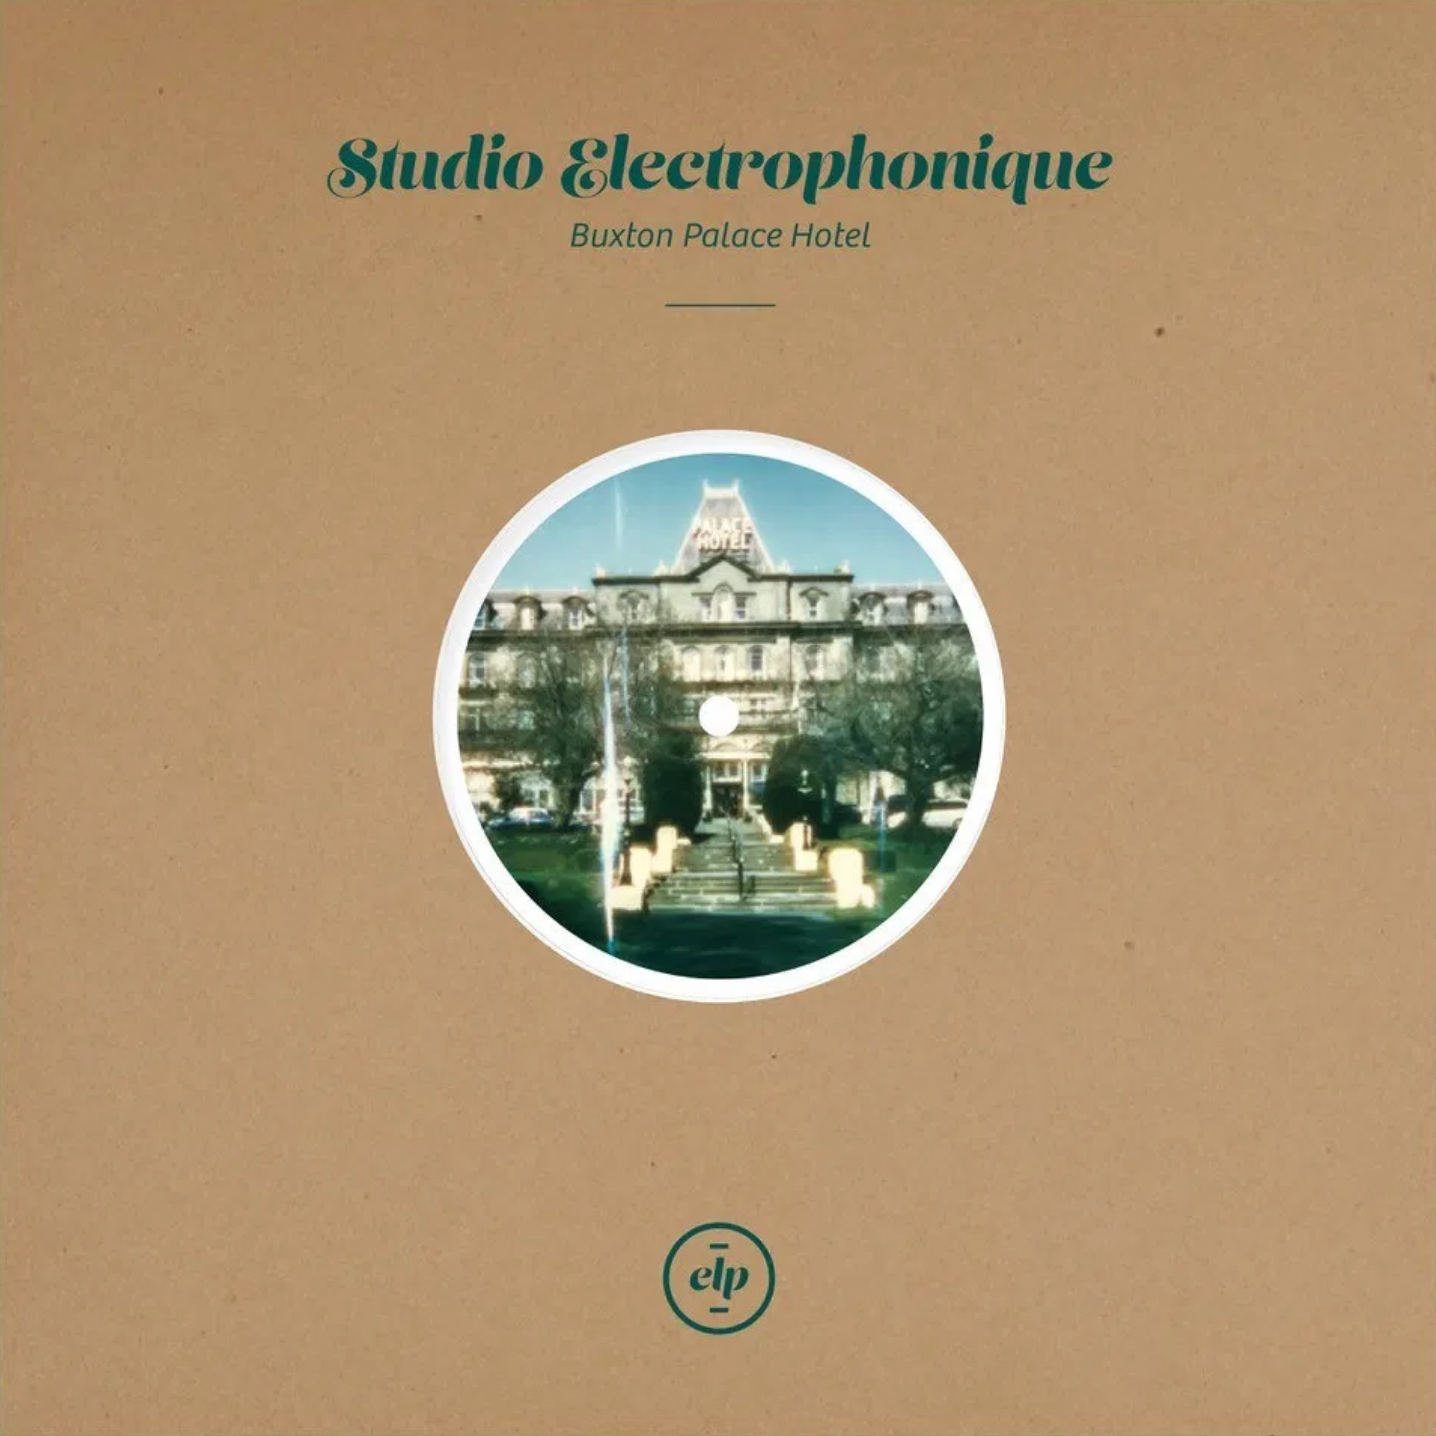 Studio Electrophonique, Buxton Palace Hotel (Violette Records)